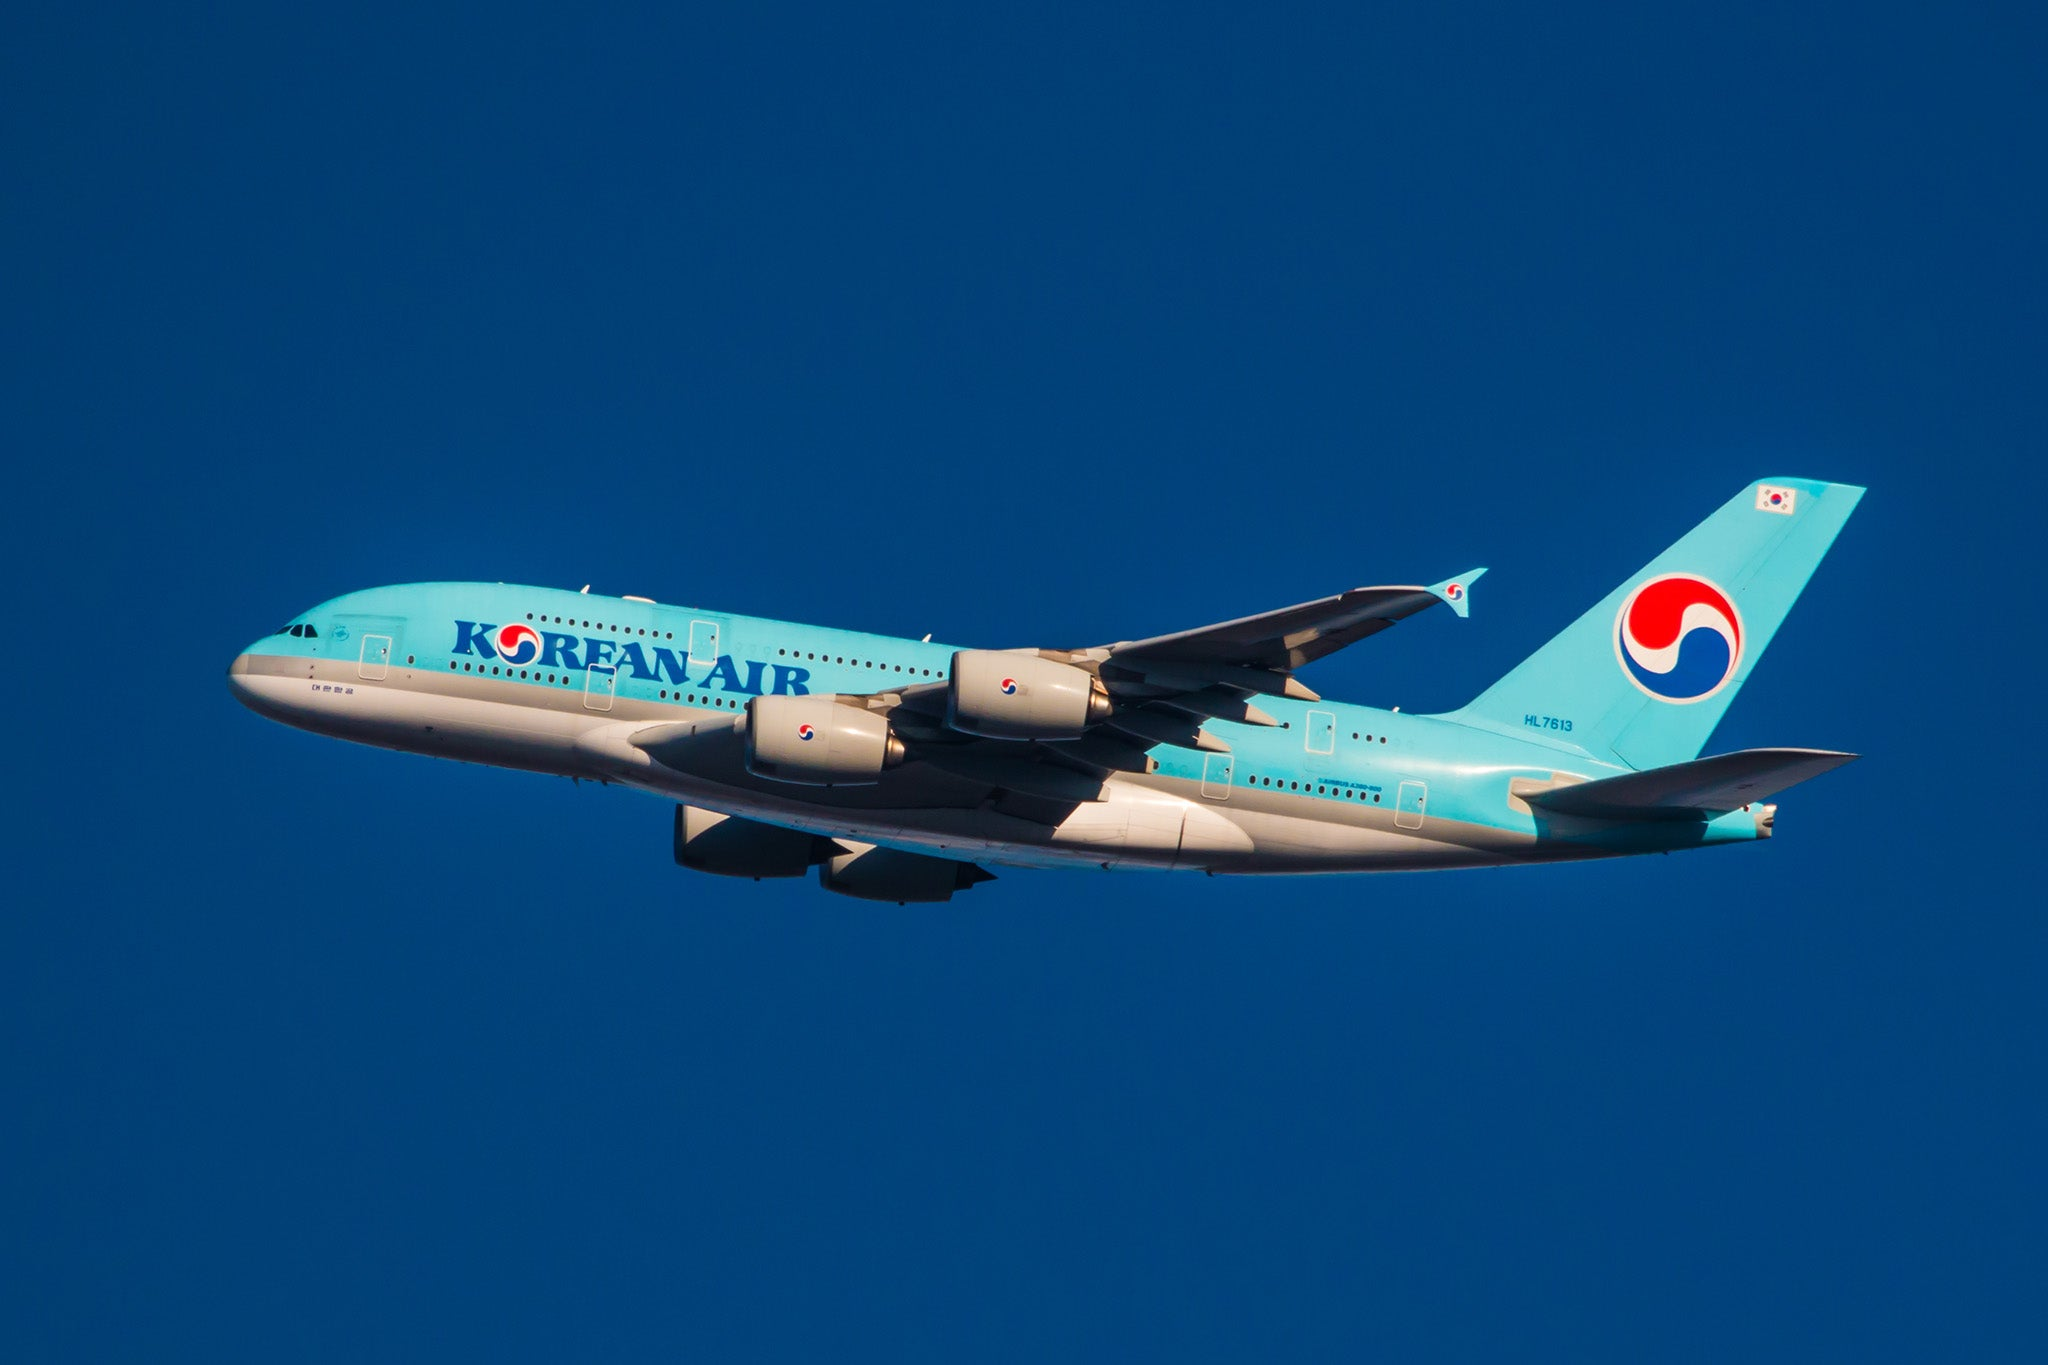 Korean Air defends pilot who tried to drink alcohol during flight